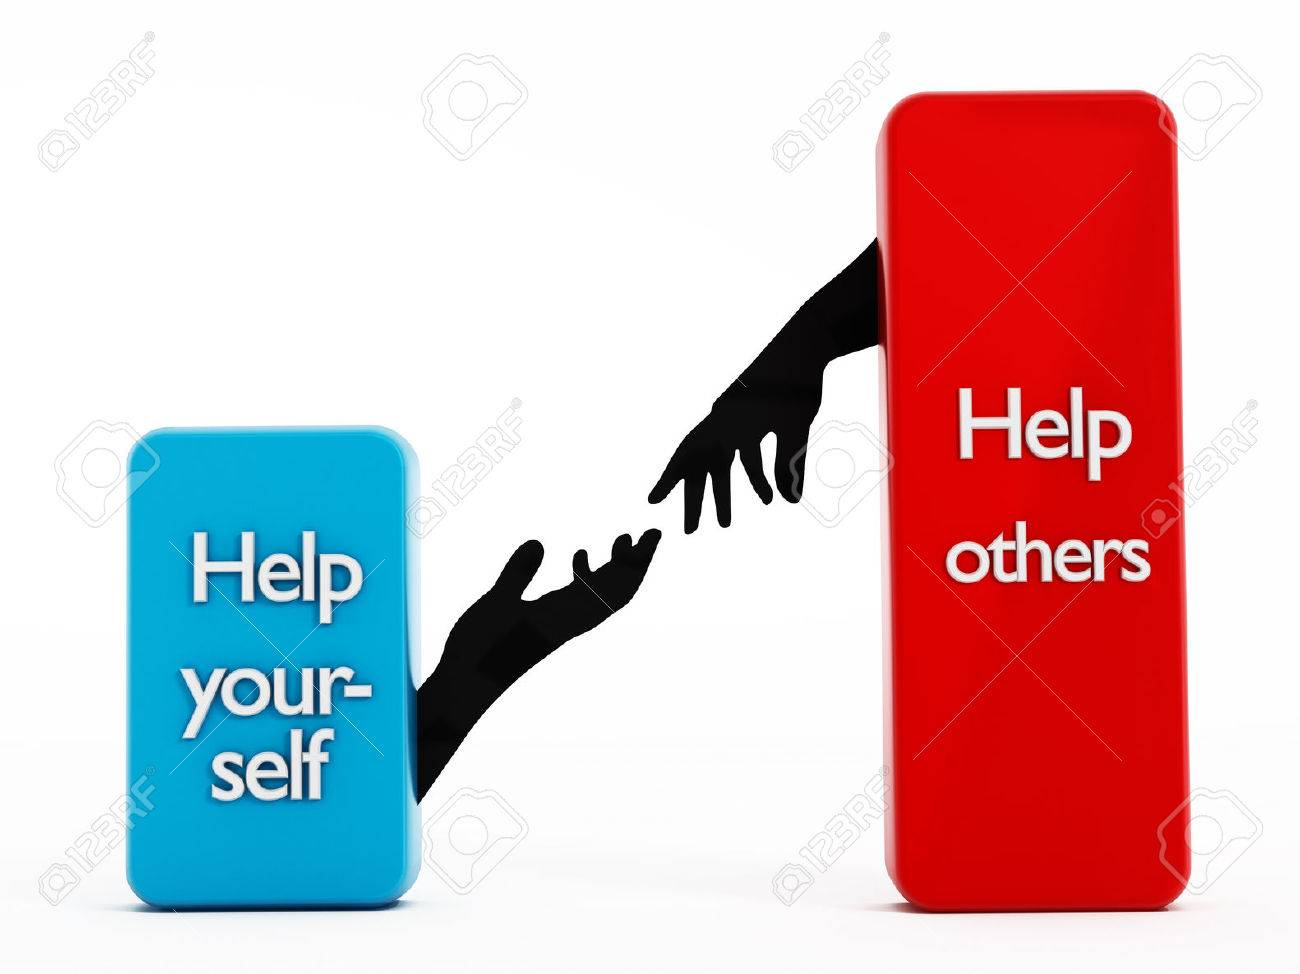 Help yourself , help others texts on rectangle shapes. Stock Photo - 30907818